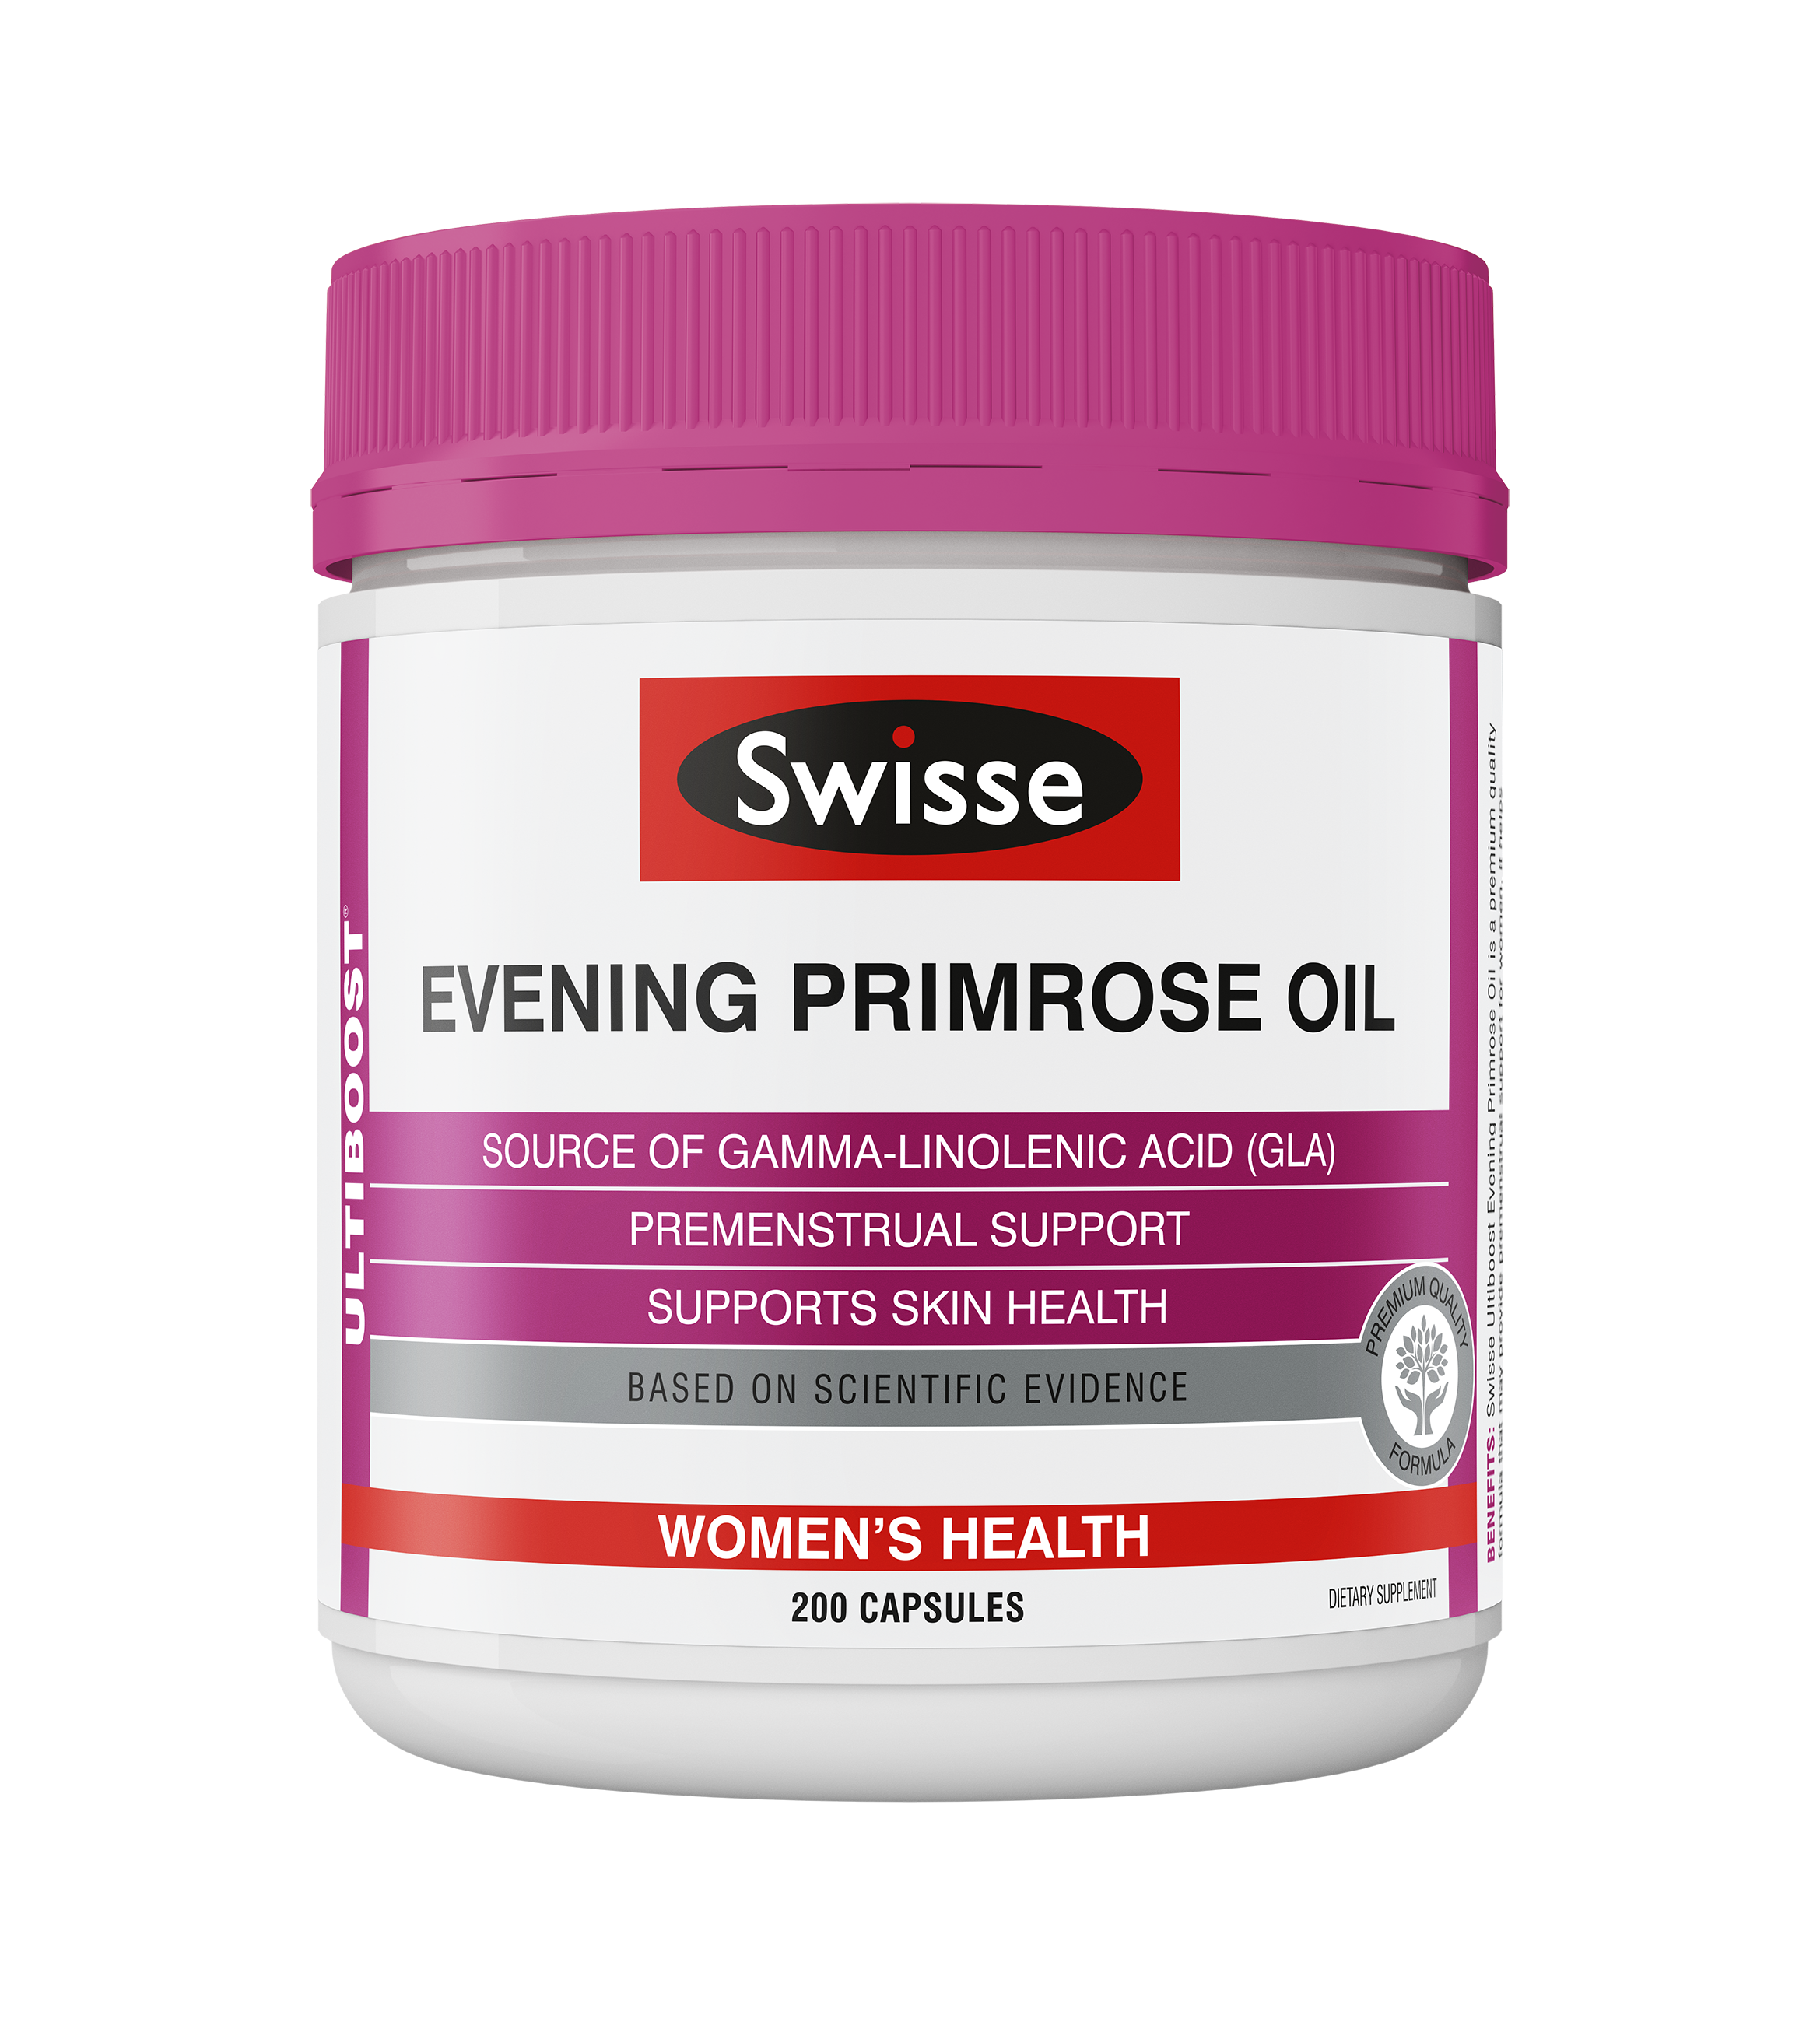 Swisse ultiboost Evening Primrose Oil Product image